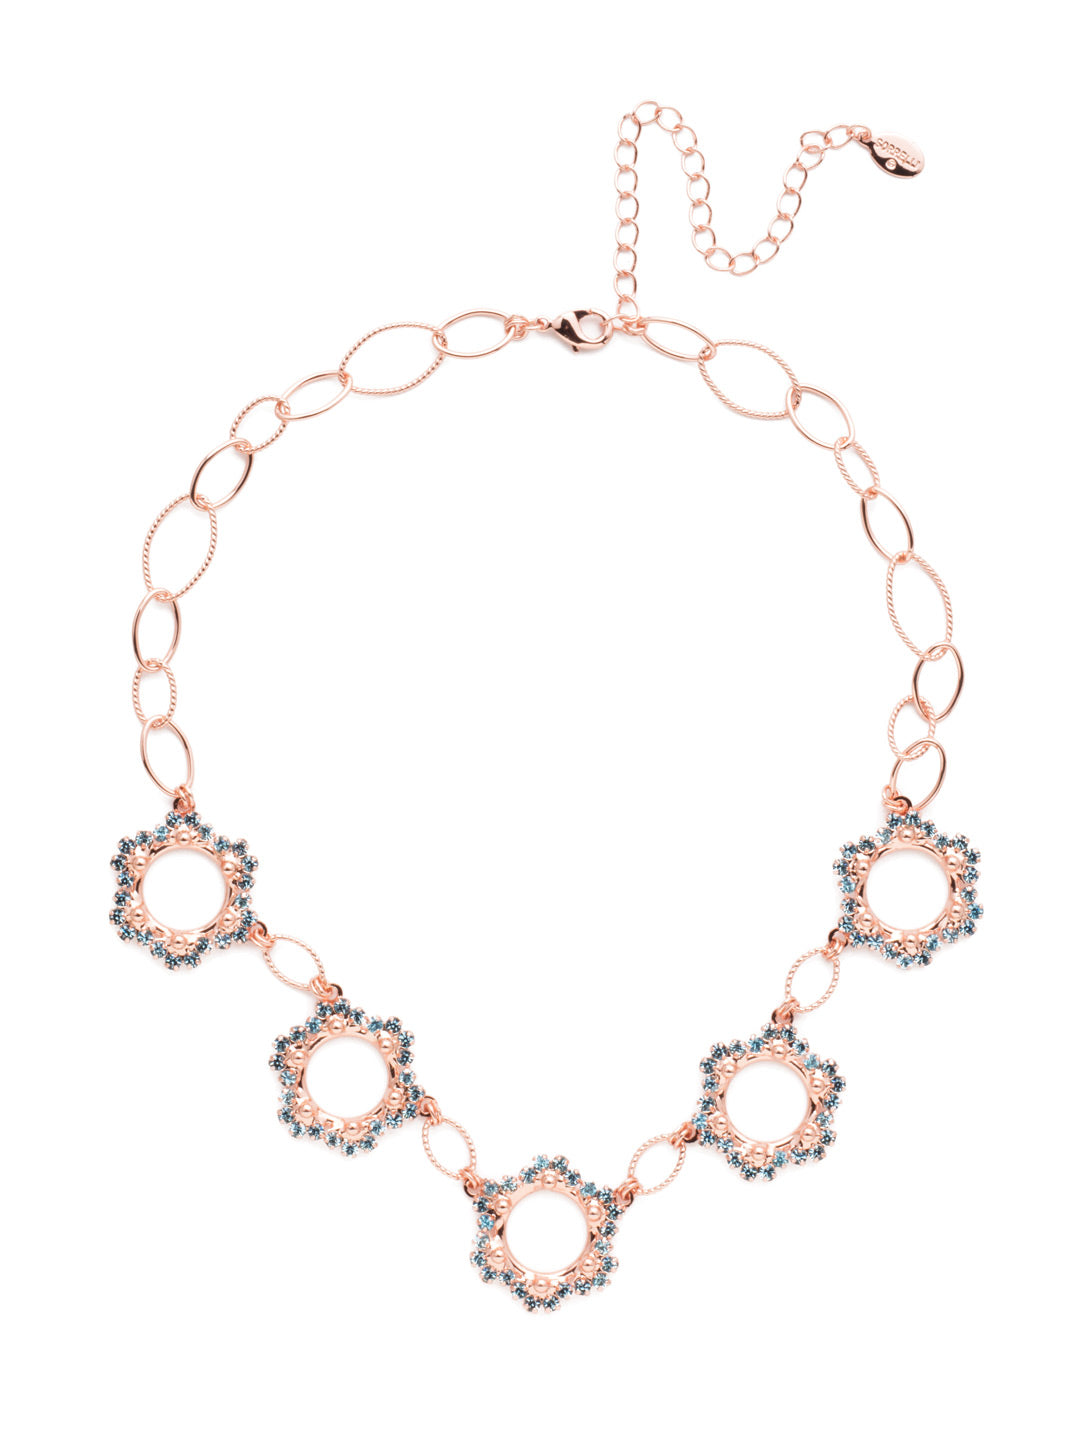 Leva Statement Necklace - NET8RGCAZ